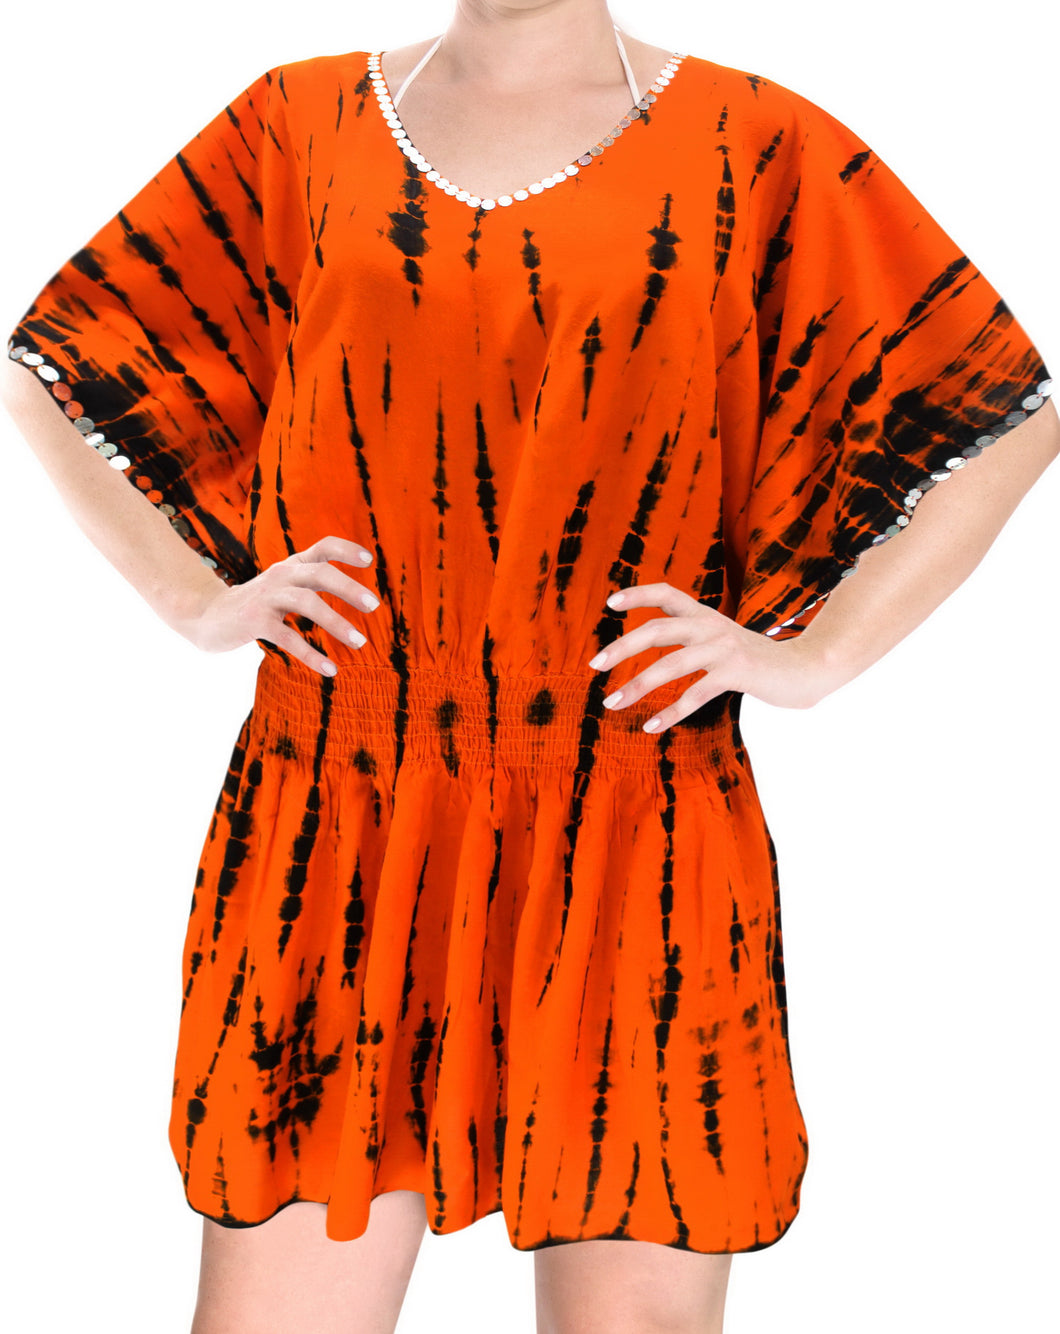 LA LEELA Bikni Swimwear Cover ups Rayon Tie_Dye Short Caftan Plains Orange_1430 OSFM 14-18 [L-XL]